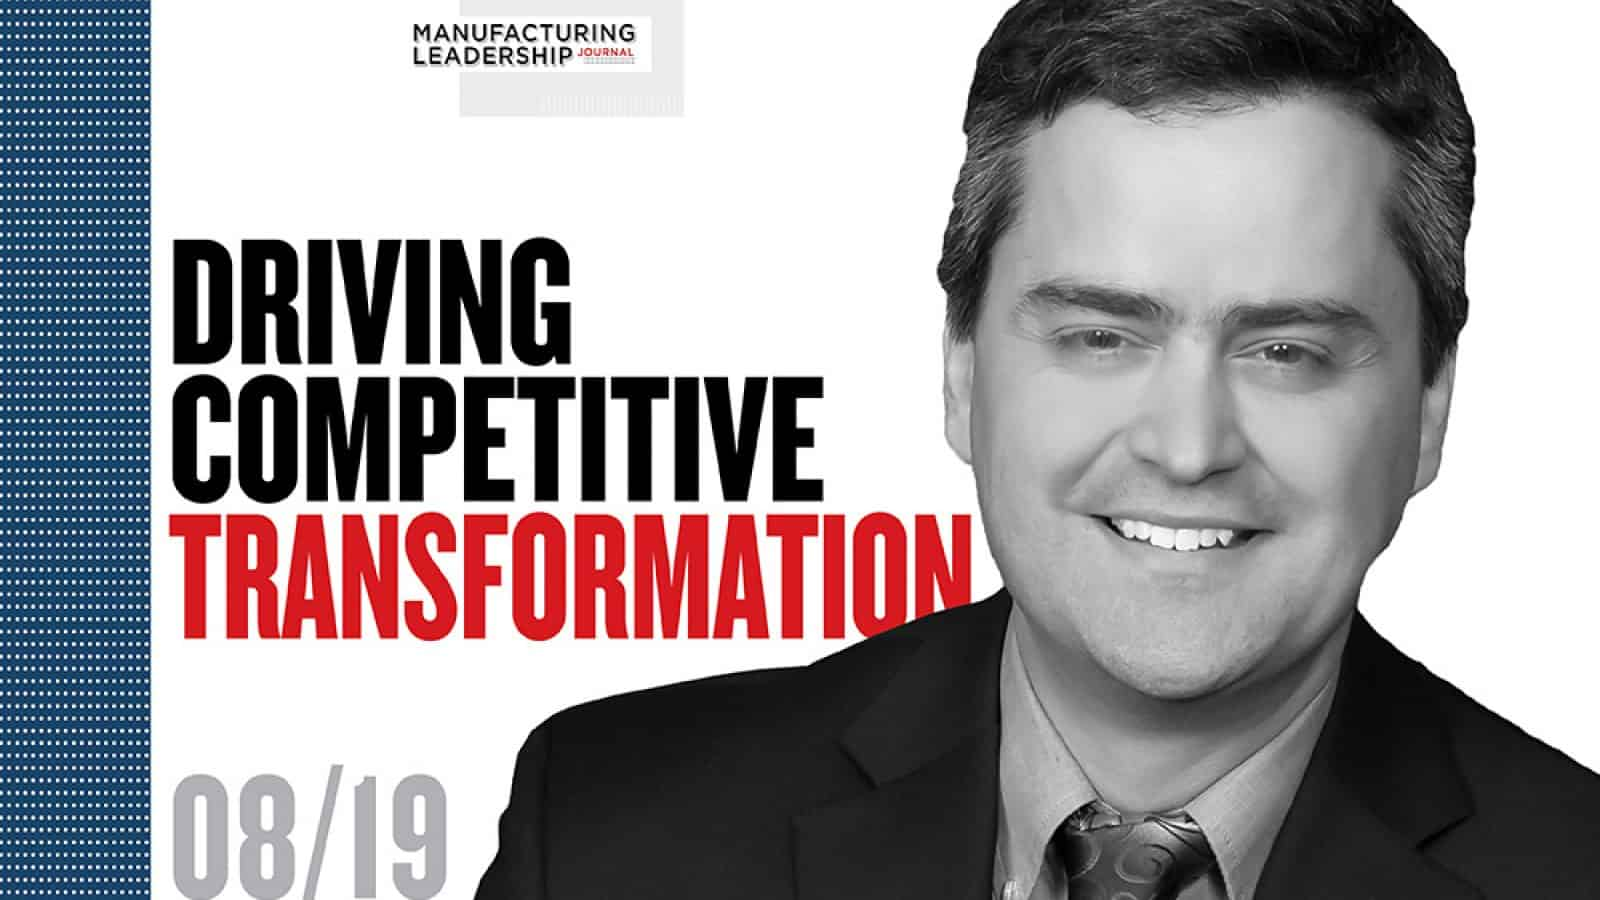 Driving Competitive Transformation